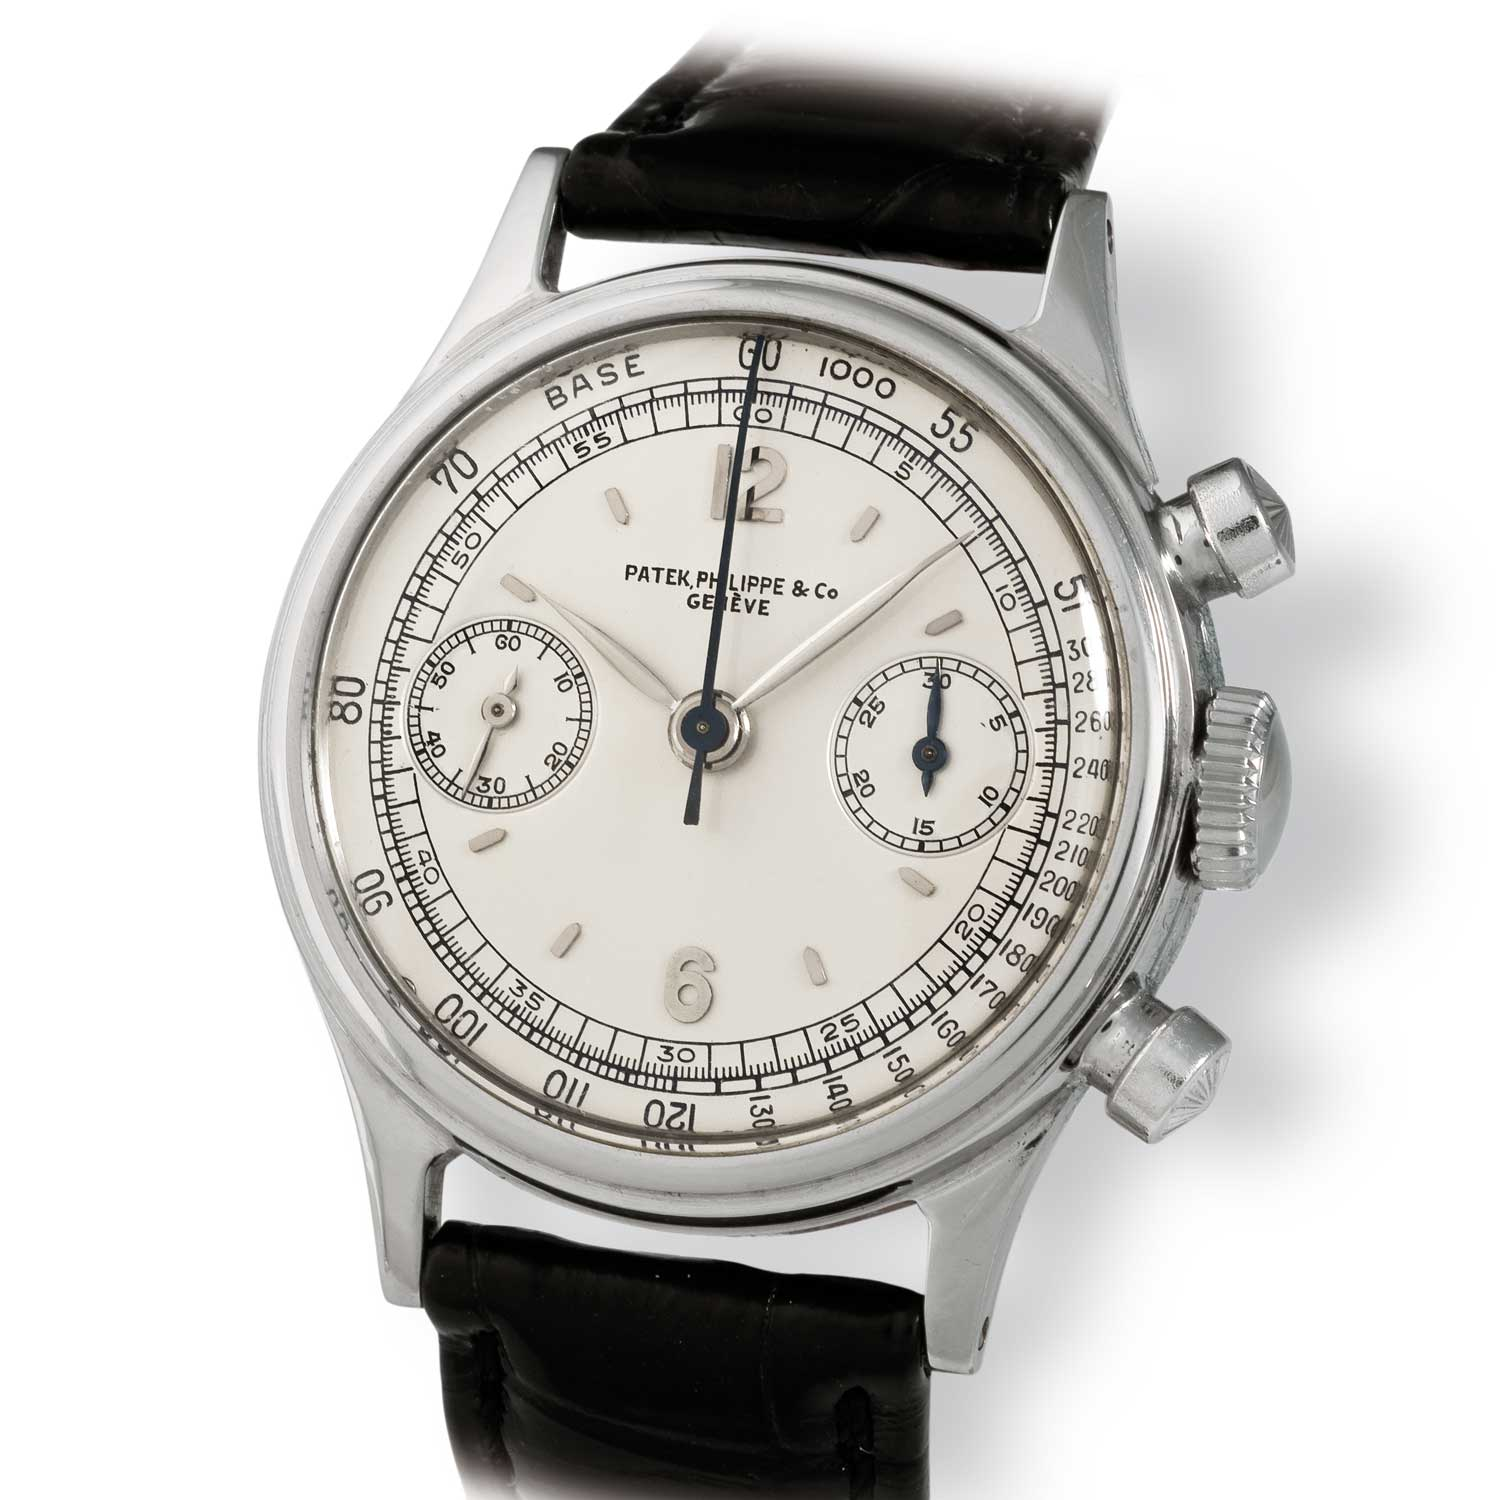 Patek Philippe ref. 1463 steel chronograph with Arabic numerals (Image: John Goldberger)